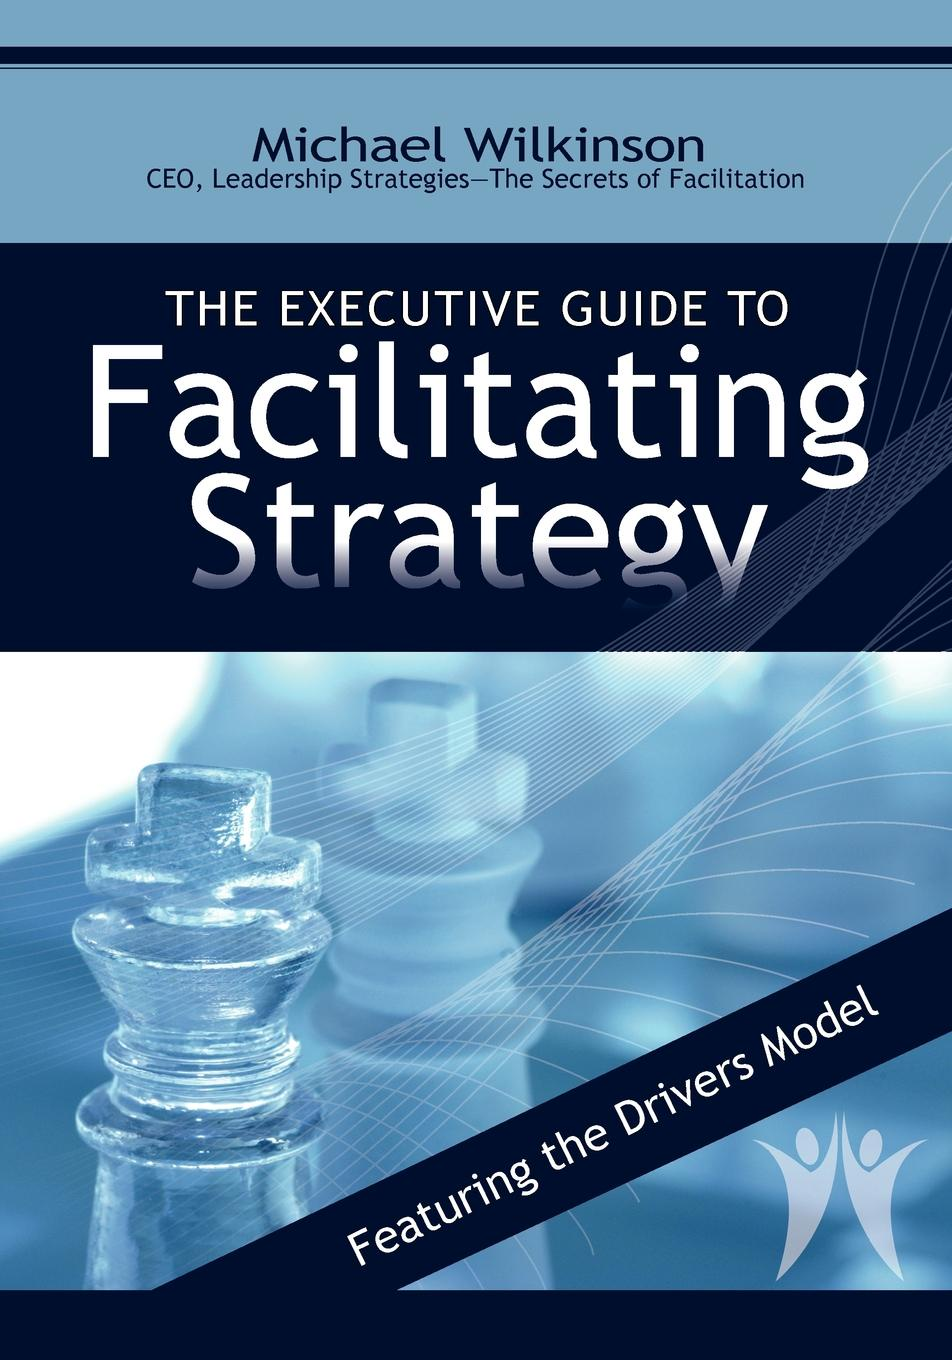 Michael Wilkinson The Executive Guide to Facilitating Strategy erica olsen strategic planning kit for dummies